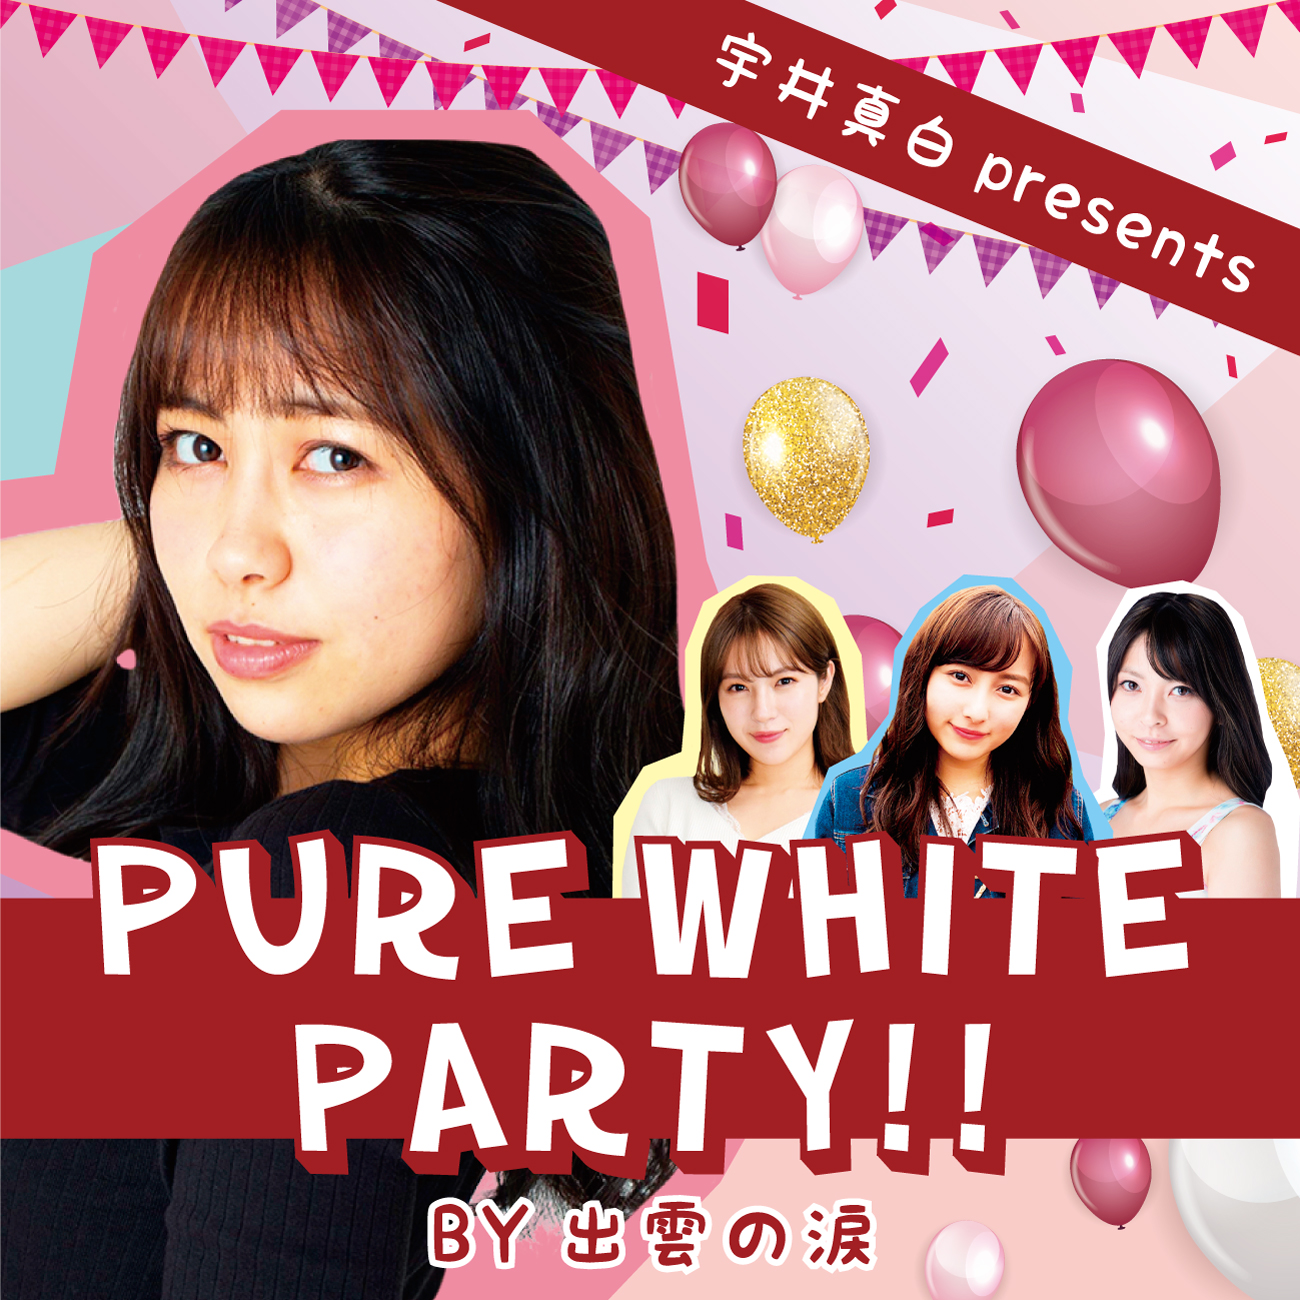 宇井真白presents pure white party!! by 出雲の涙